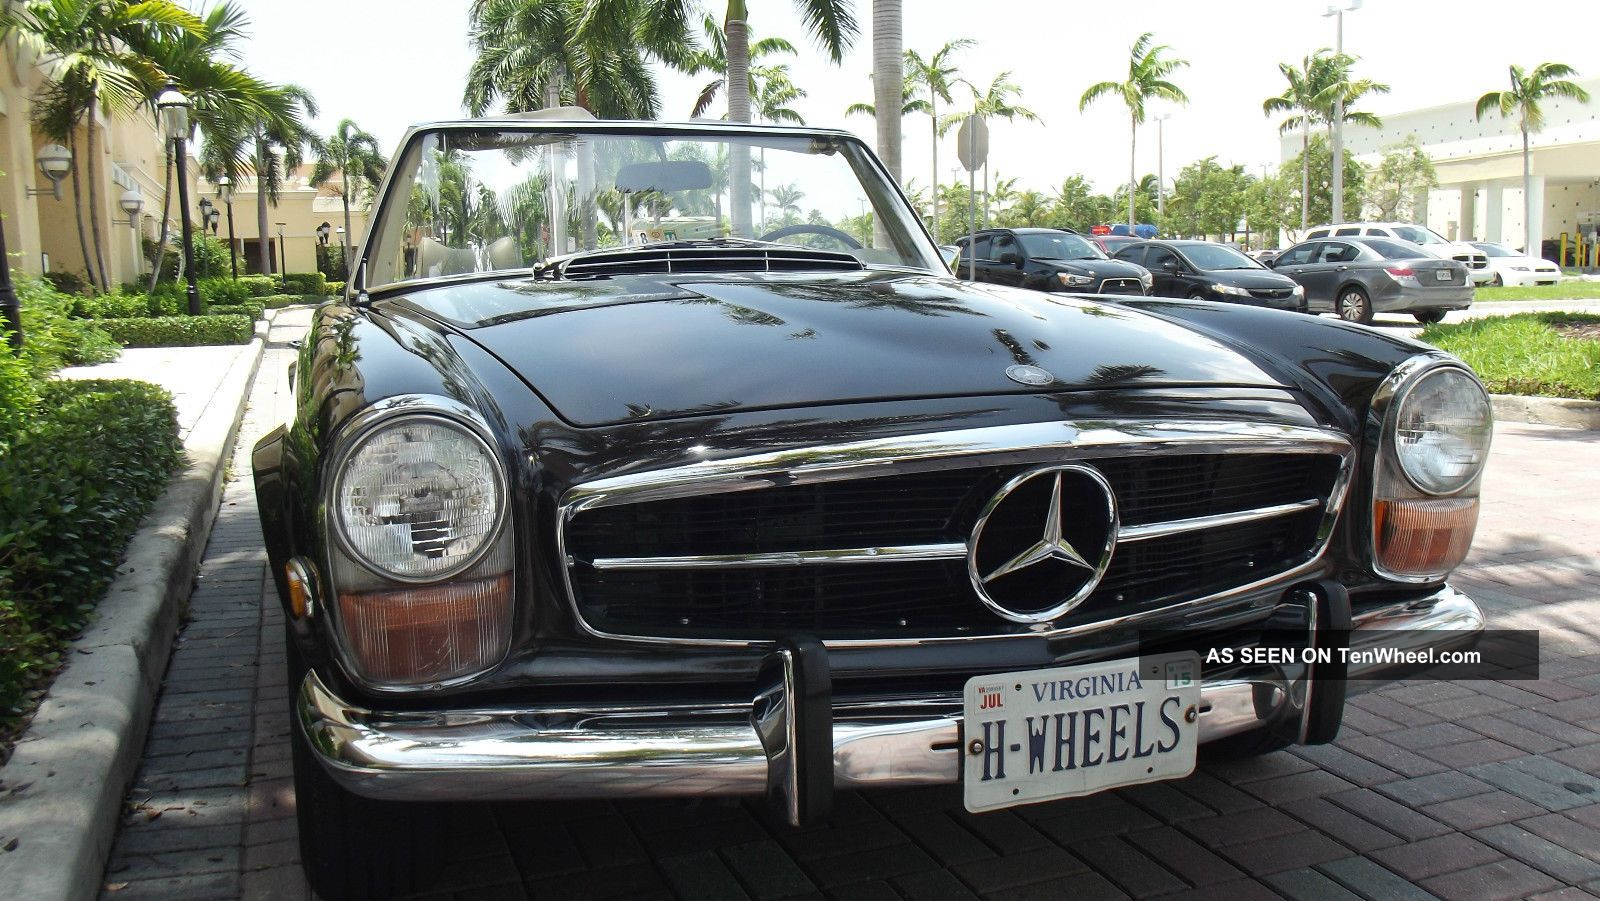 1970 Mercedes 280 Sl Tabacco Brown With Creme Interior.  Two Tops,  Ac. SL-Class photo